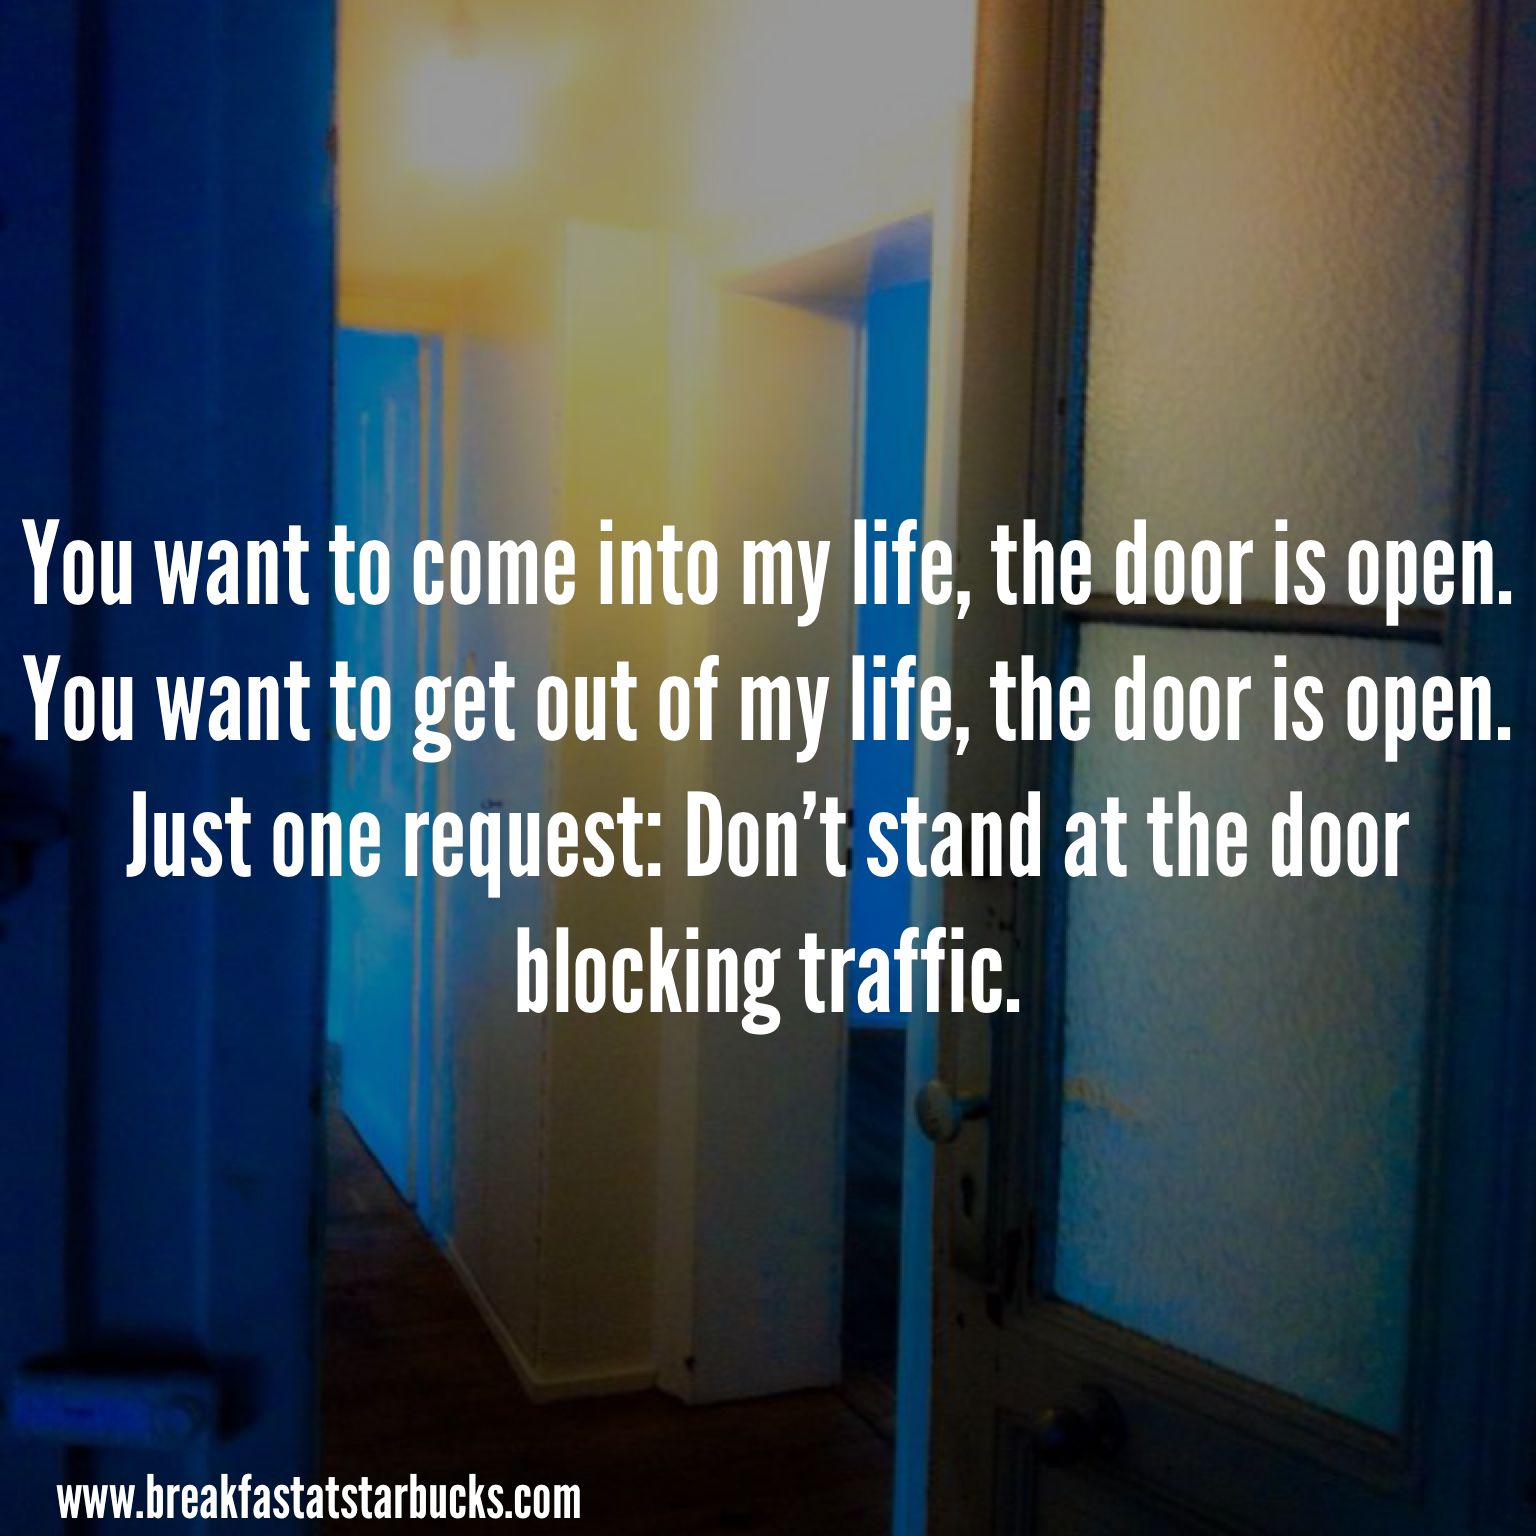 Just Get Out Of My Life Quotes: You Want To Come Into Or Get Out Of My Life, The Door Is